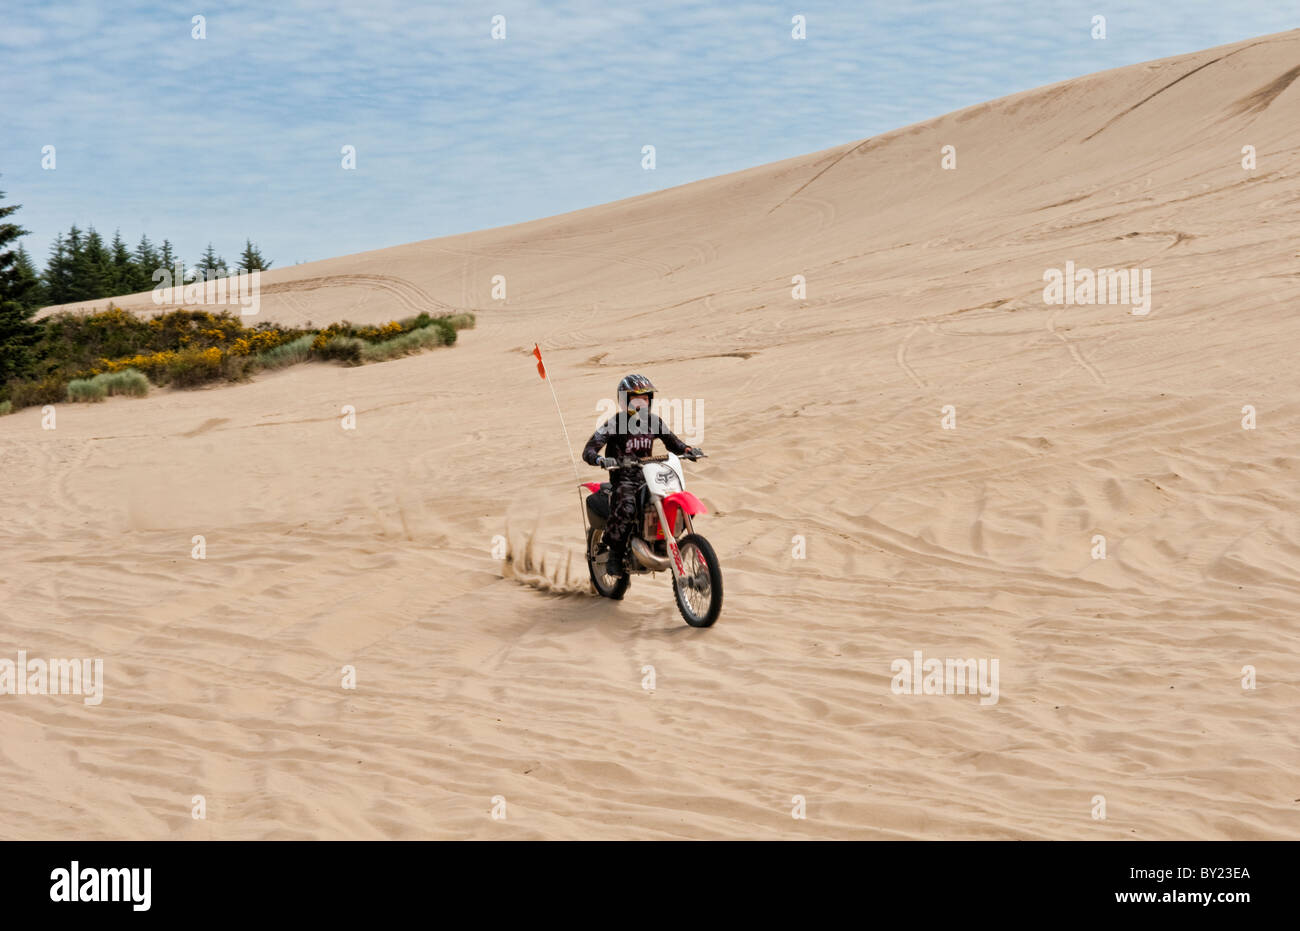 Teens Riding Dirt Bikes All Over The Massive Sand Dunes In Oregon